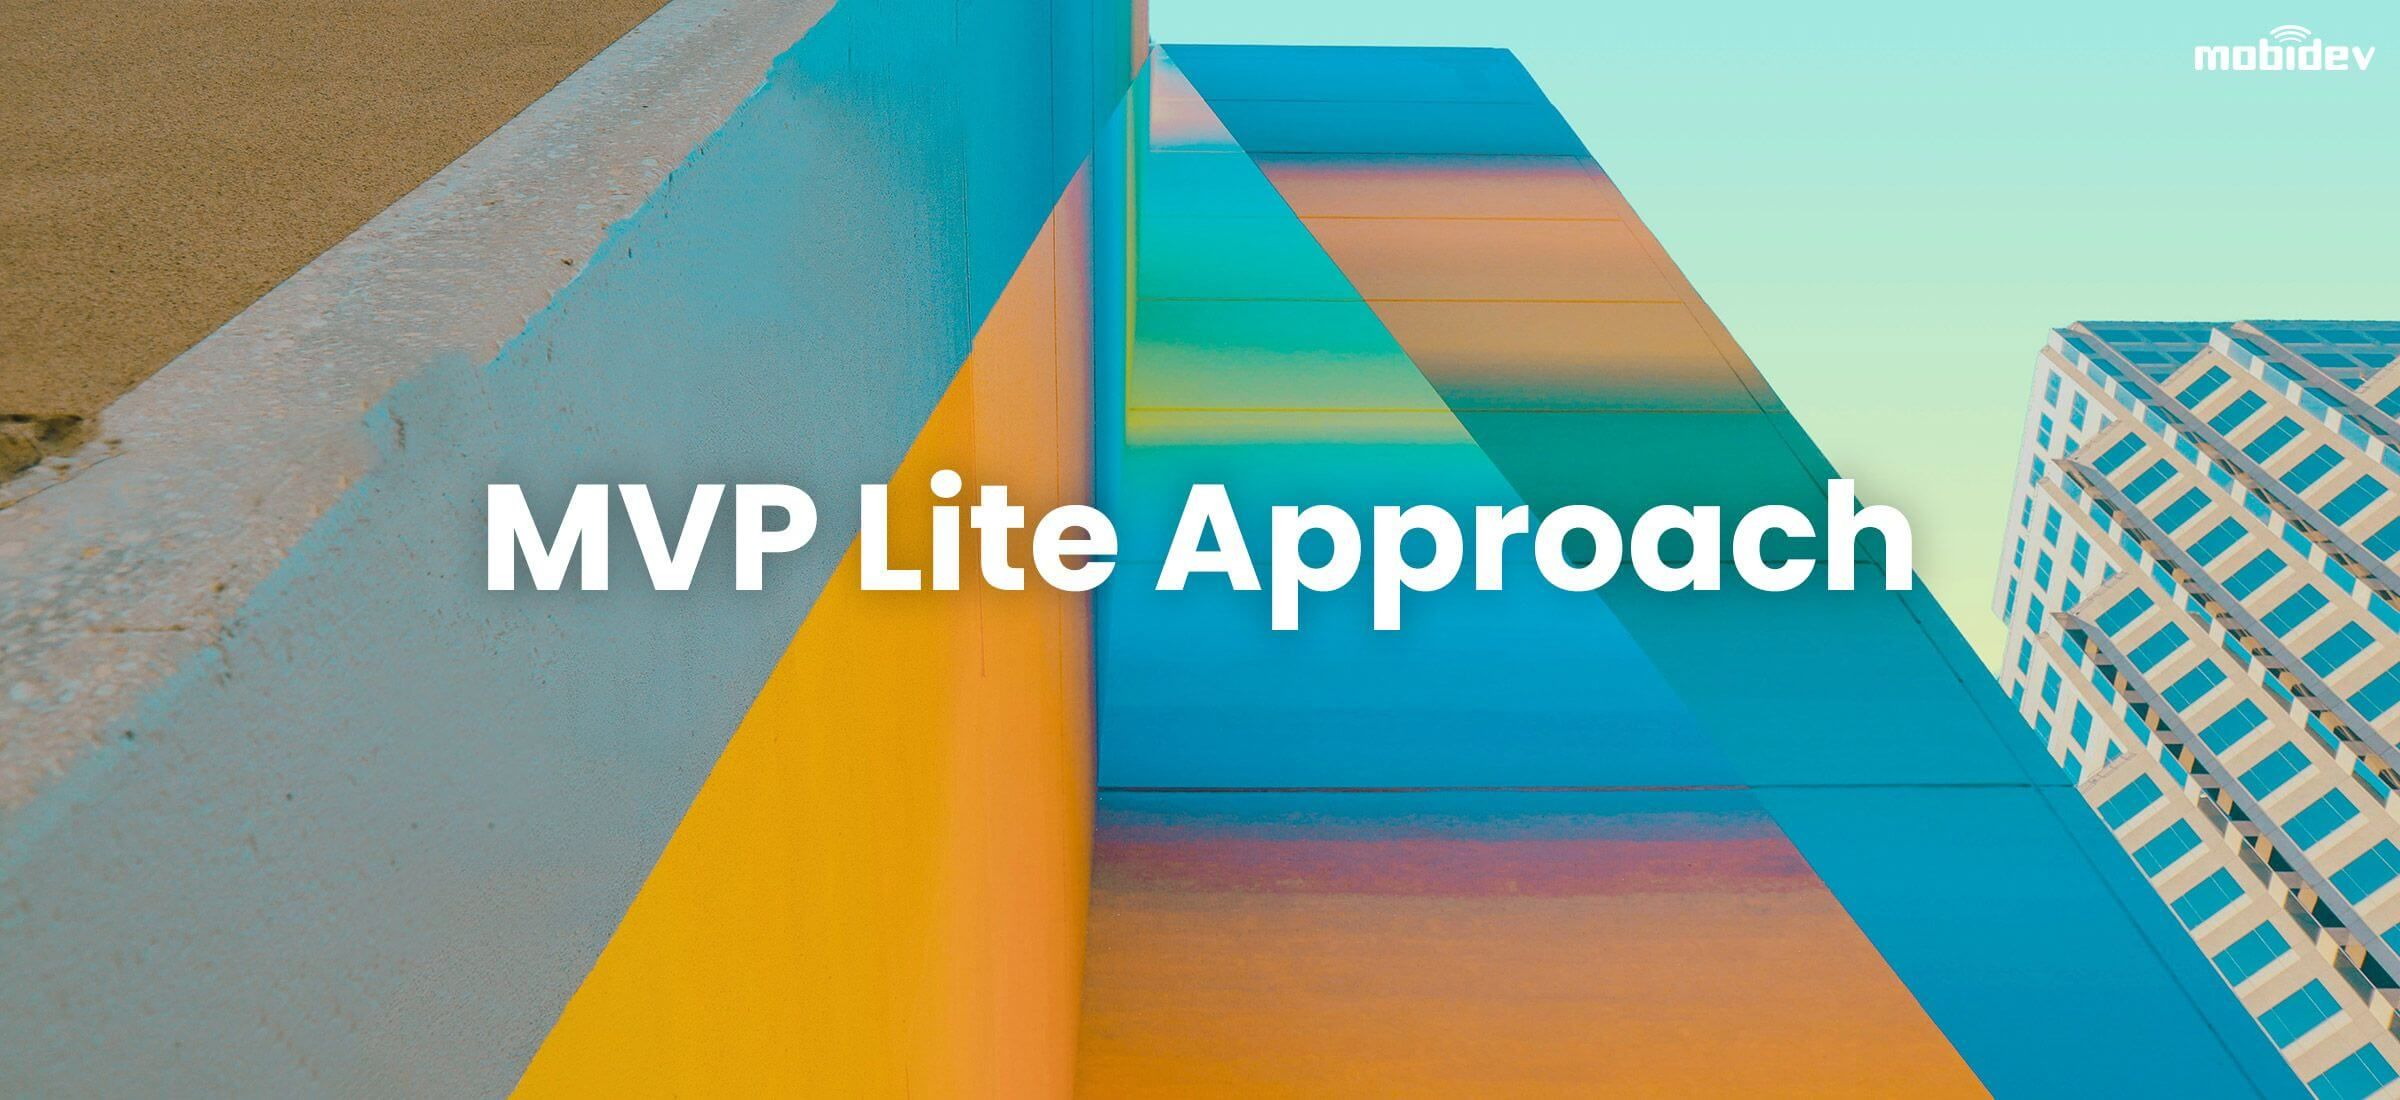 /the-mvp-lite-approach-a-software-development-approach-for-2021-and-beyond-se3734bk feature image